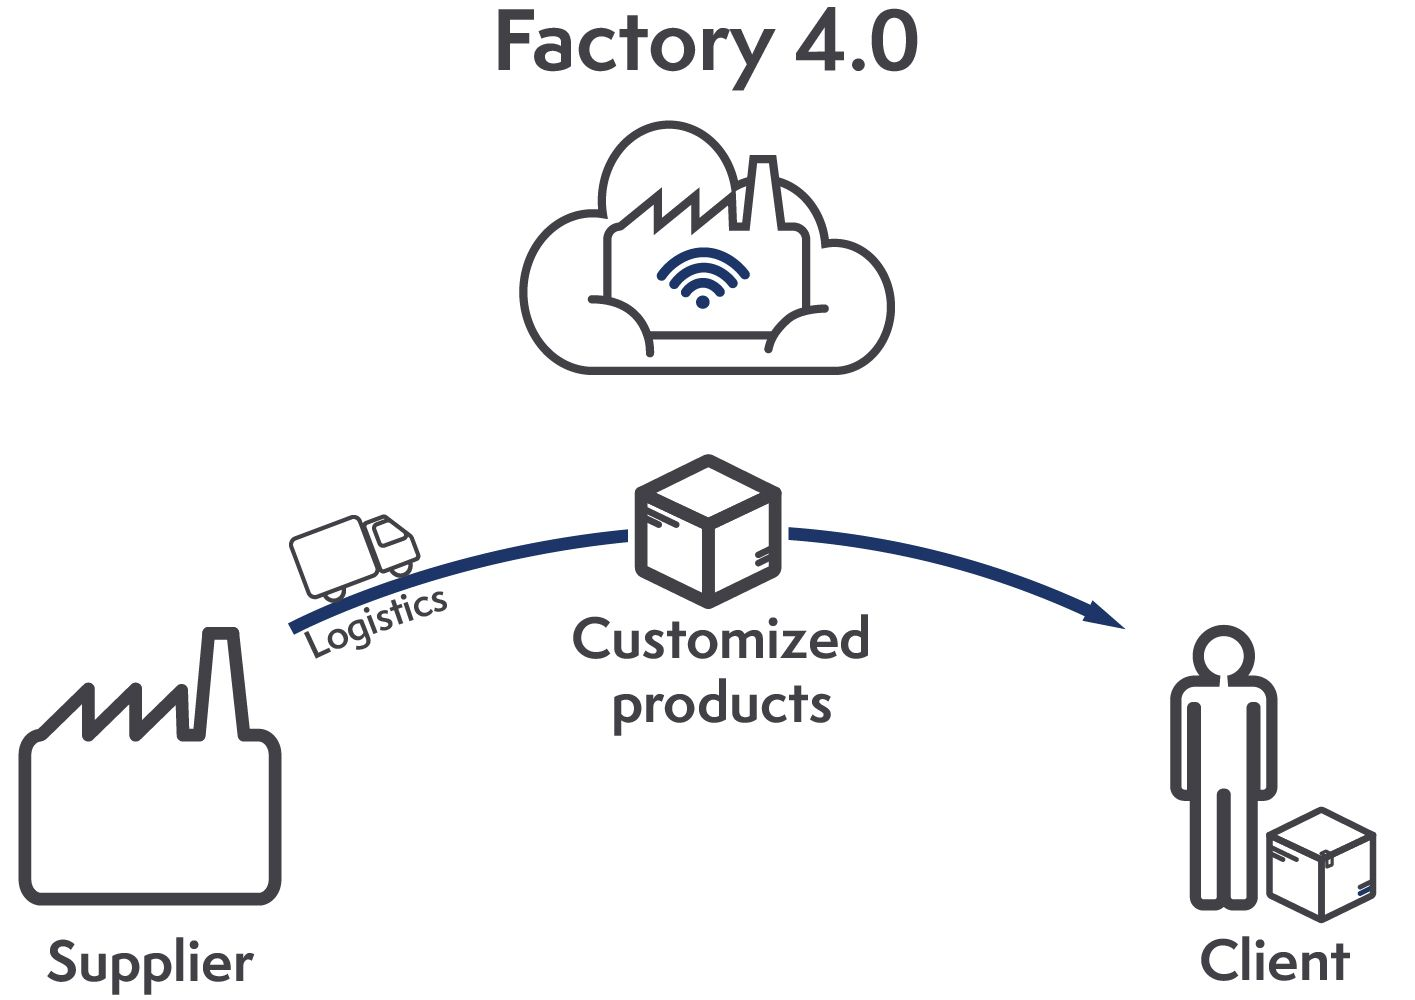 Industry 4.0 gives the opportunity to respond to specific needs